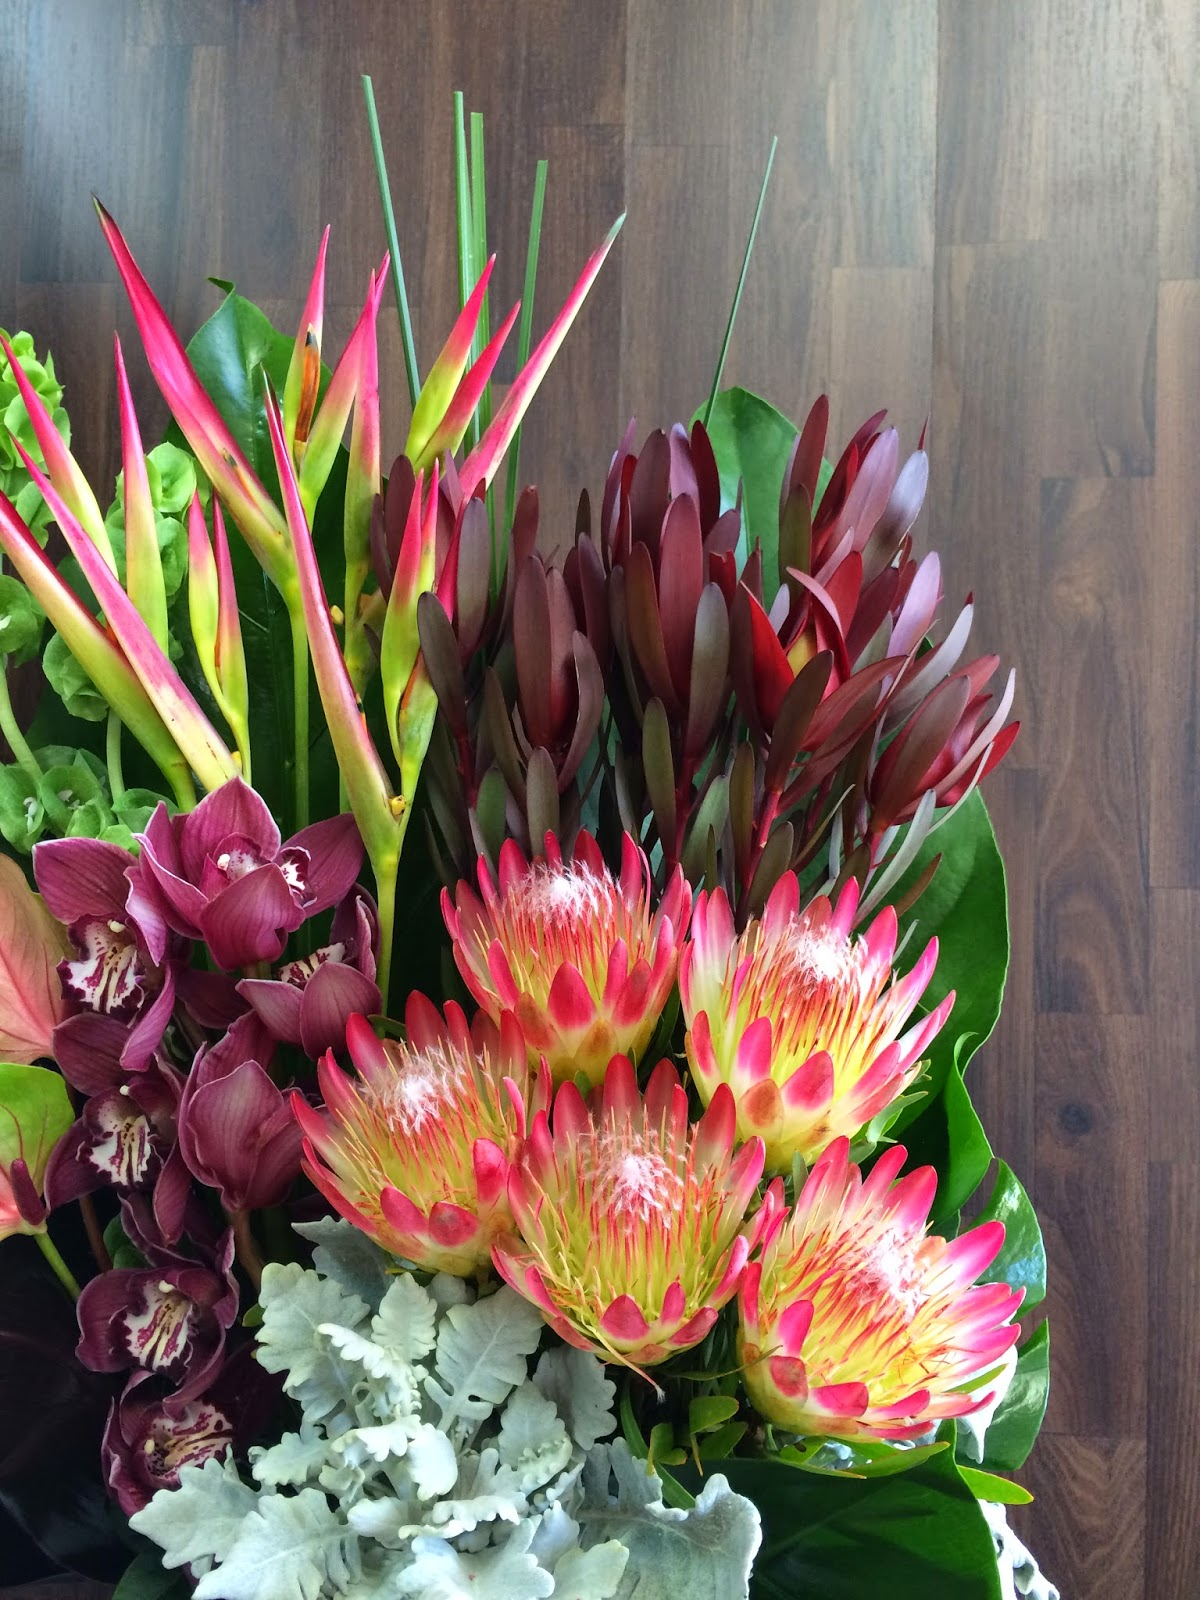 Urban Flower  Australian Native Flower Arrangements For Church Event     You need not worry about limp or wilting floral displays as native flowers  are so durable and hardy even on very hot days or in humid temperatures